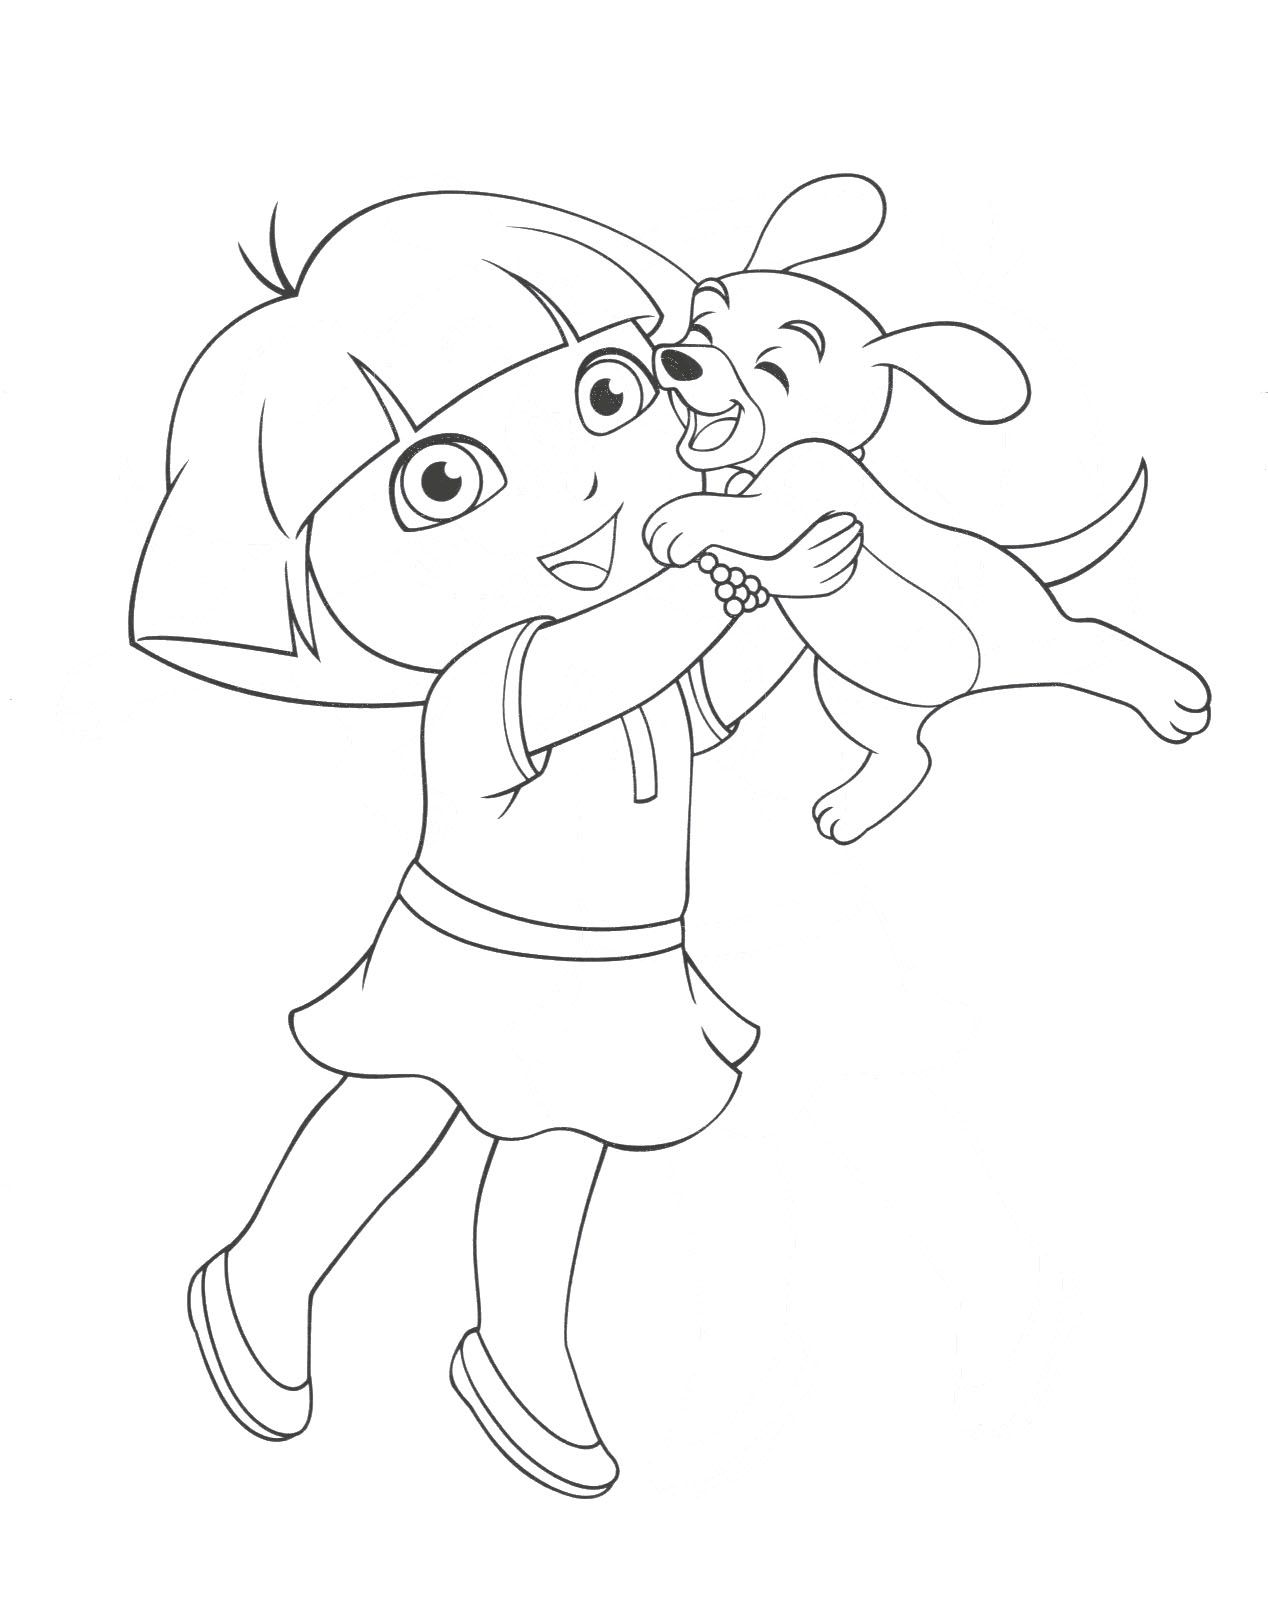 1268x1599 Dora Was Playing With Pet Animals Coloring Page Dora Coloring